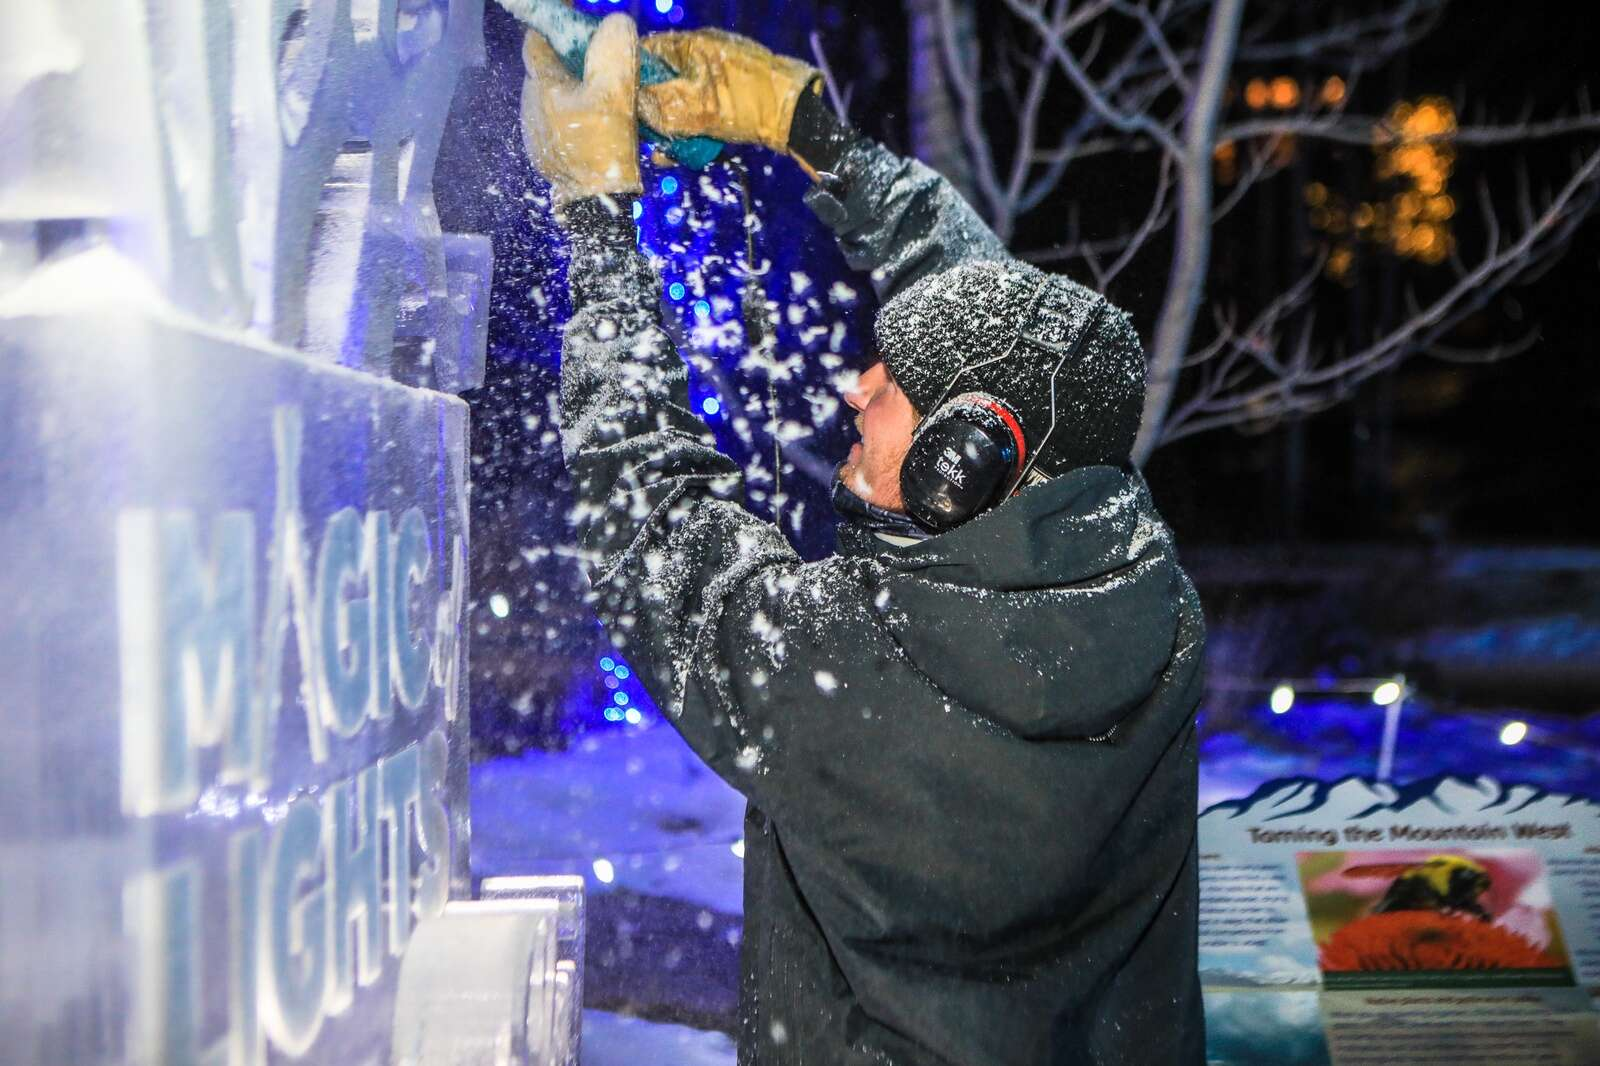 Jake Proffit of Alpine Ice carves an ice sculpture for the Magic of Lights Vail Thursday in Vail. The events features half-a-million lights throughout a half-mile walk through Betty Ford Alpine Gardens in Vail. (Chris Dillmann/cdillmann@vaildaily.com)